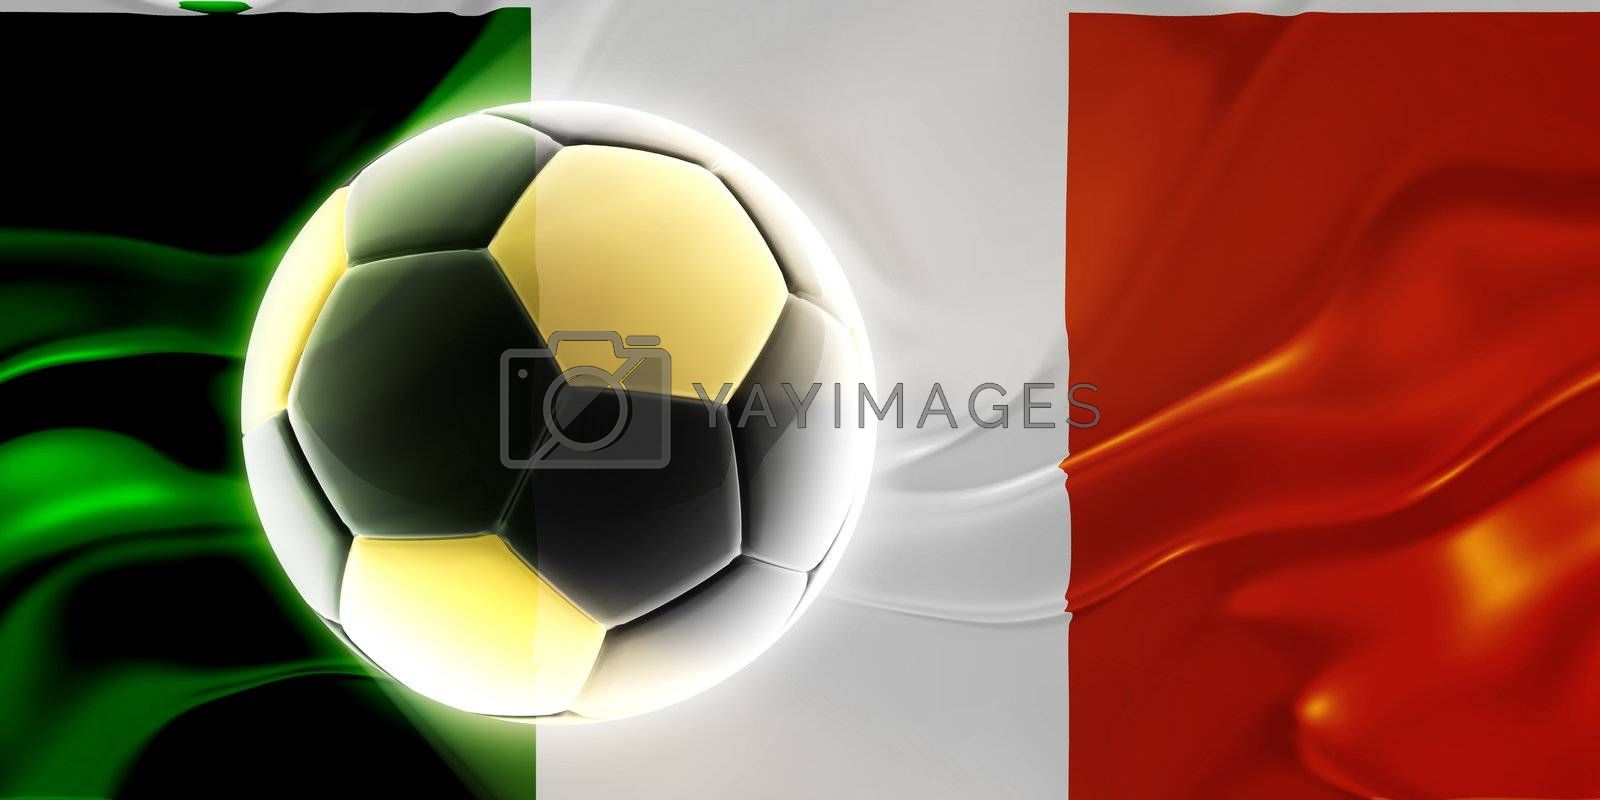 Flag of Ireland, national country symbol illustration wavy fabric sports soccer football